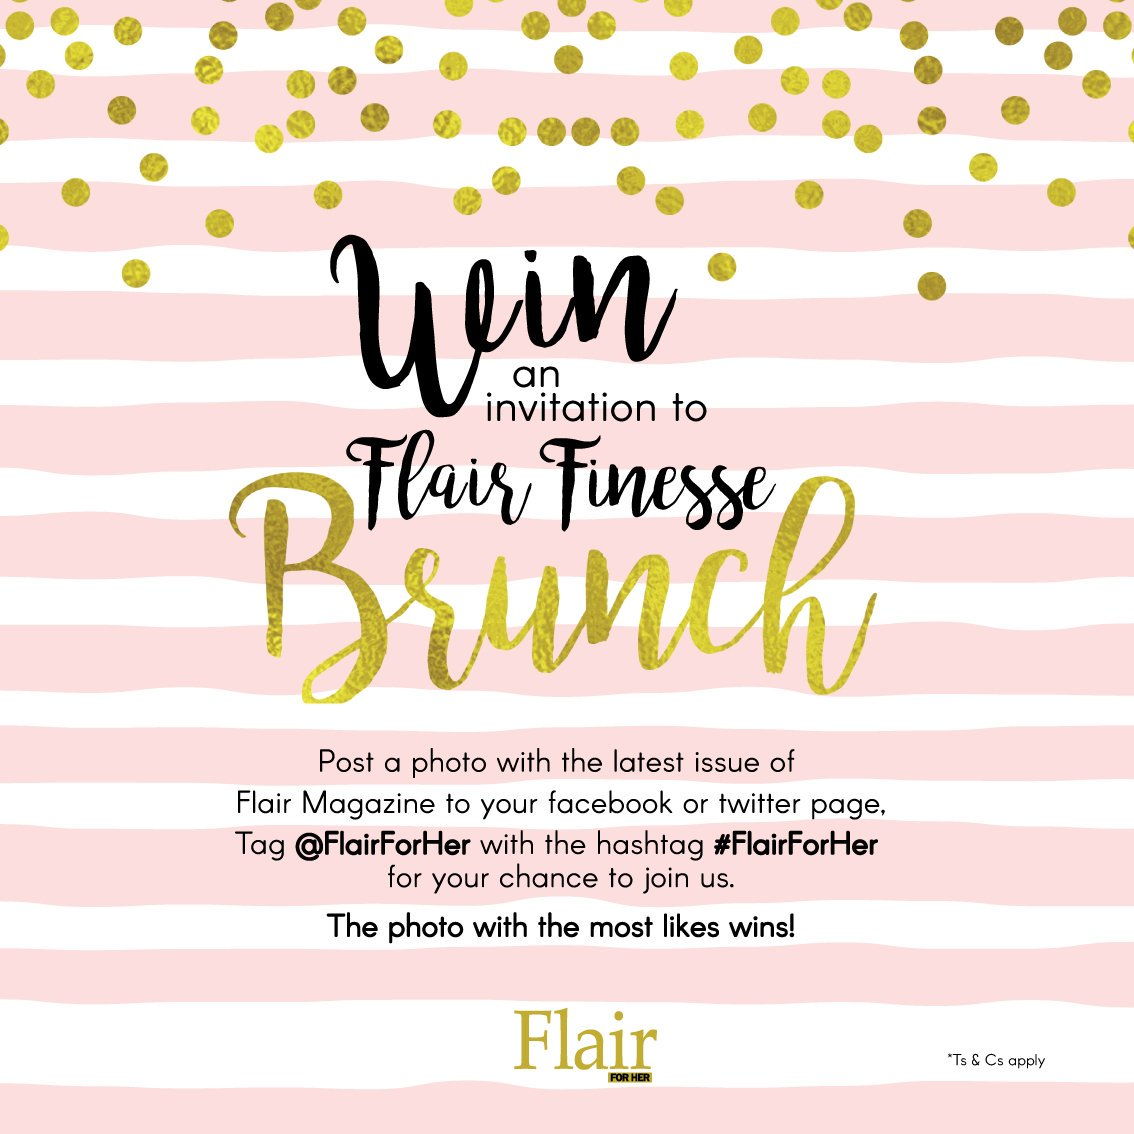 Post your pic and win an invite to the #FlairForHer Finesse Brunch! #ForHer #ForYou <br>http://pic.twitter.com/NsIebVtboI